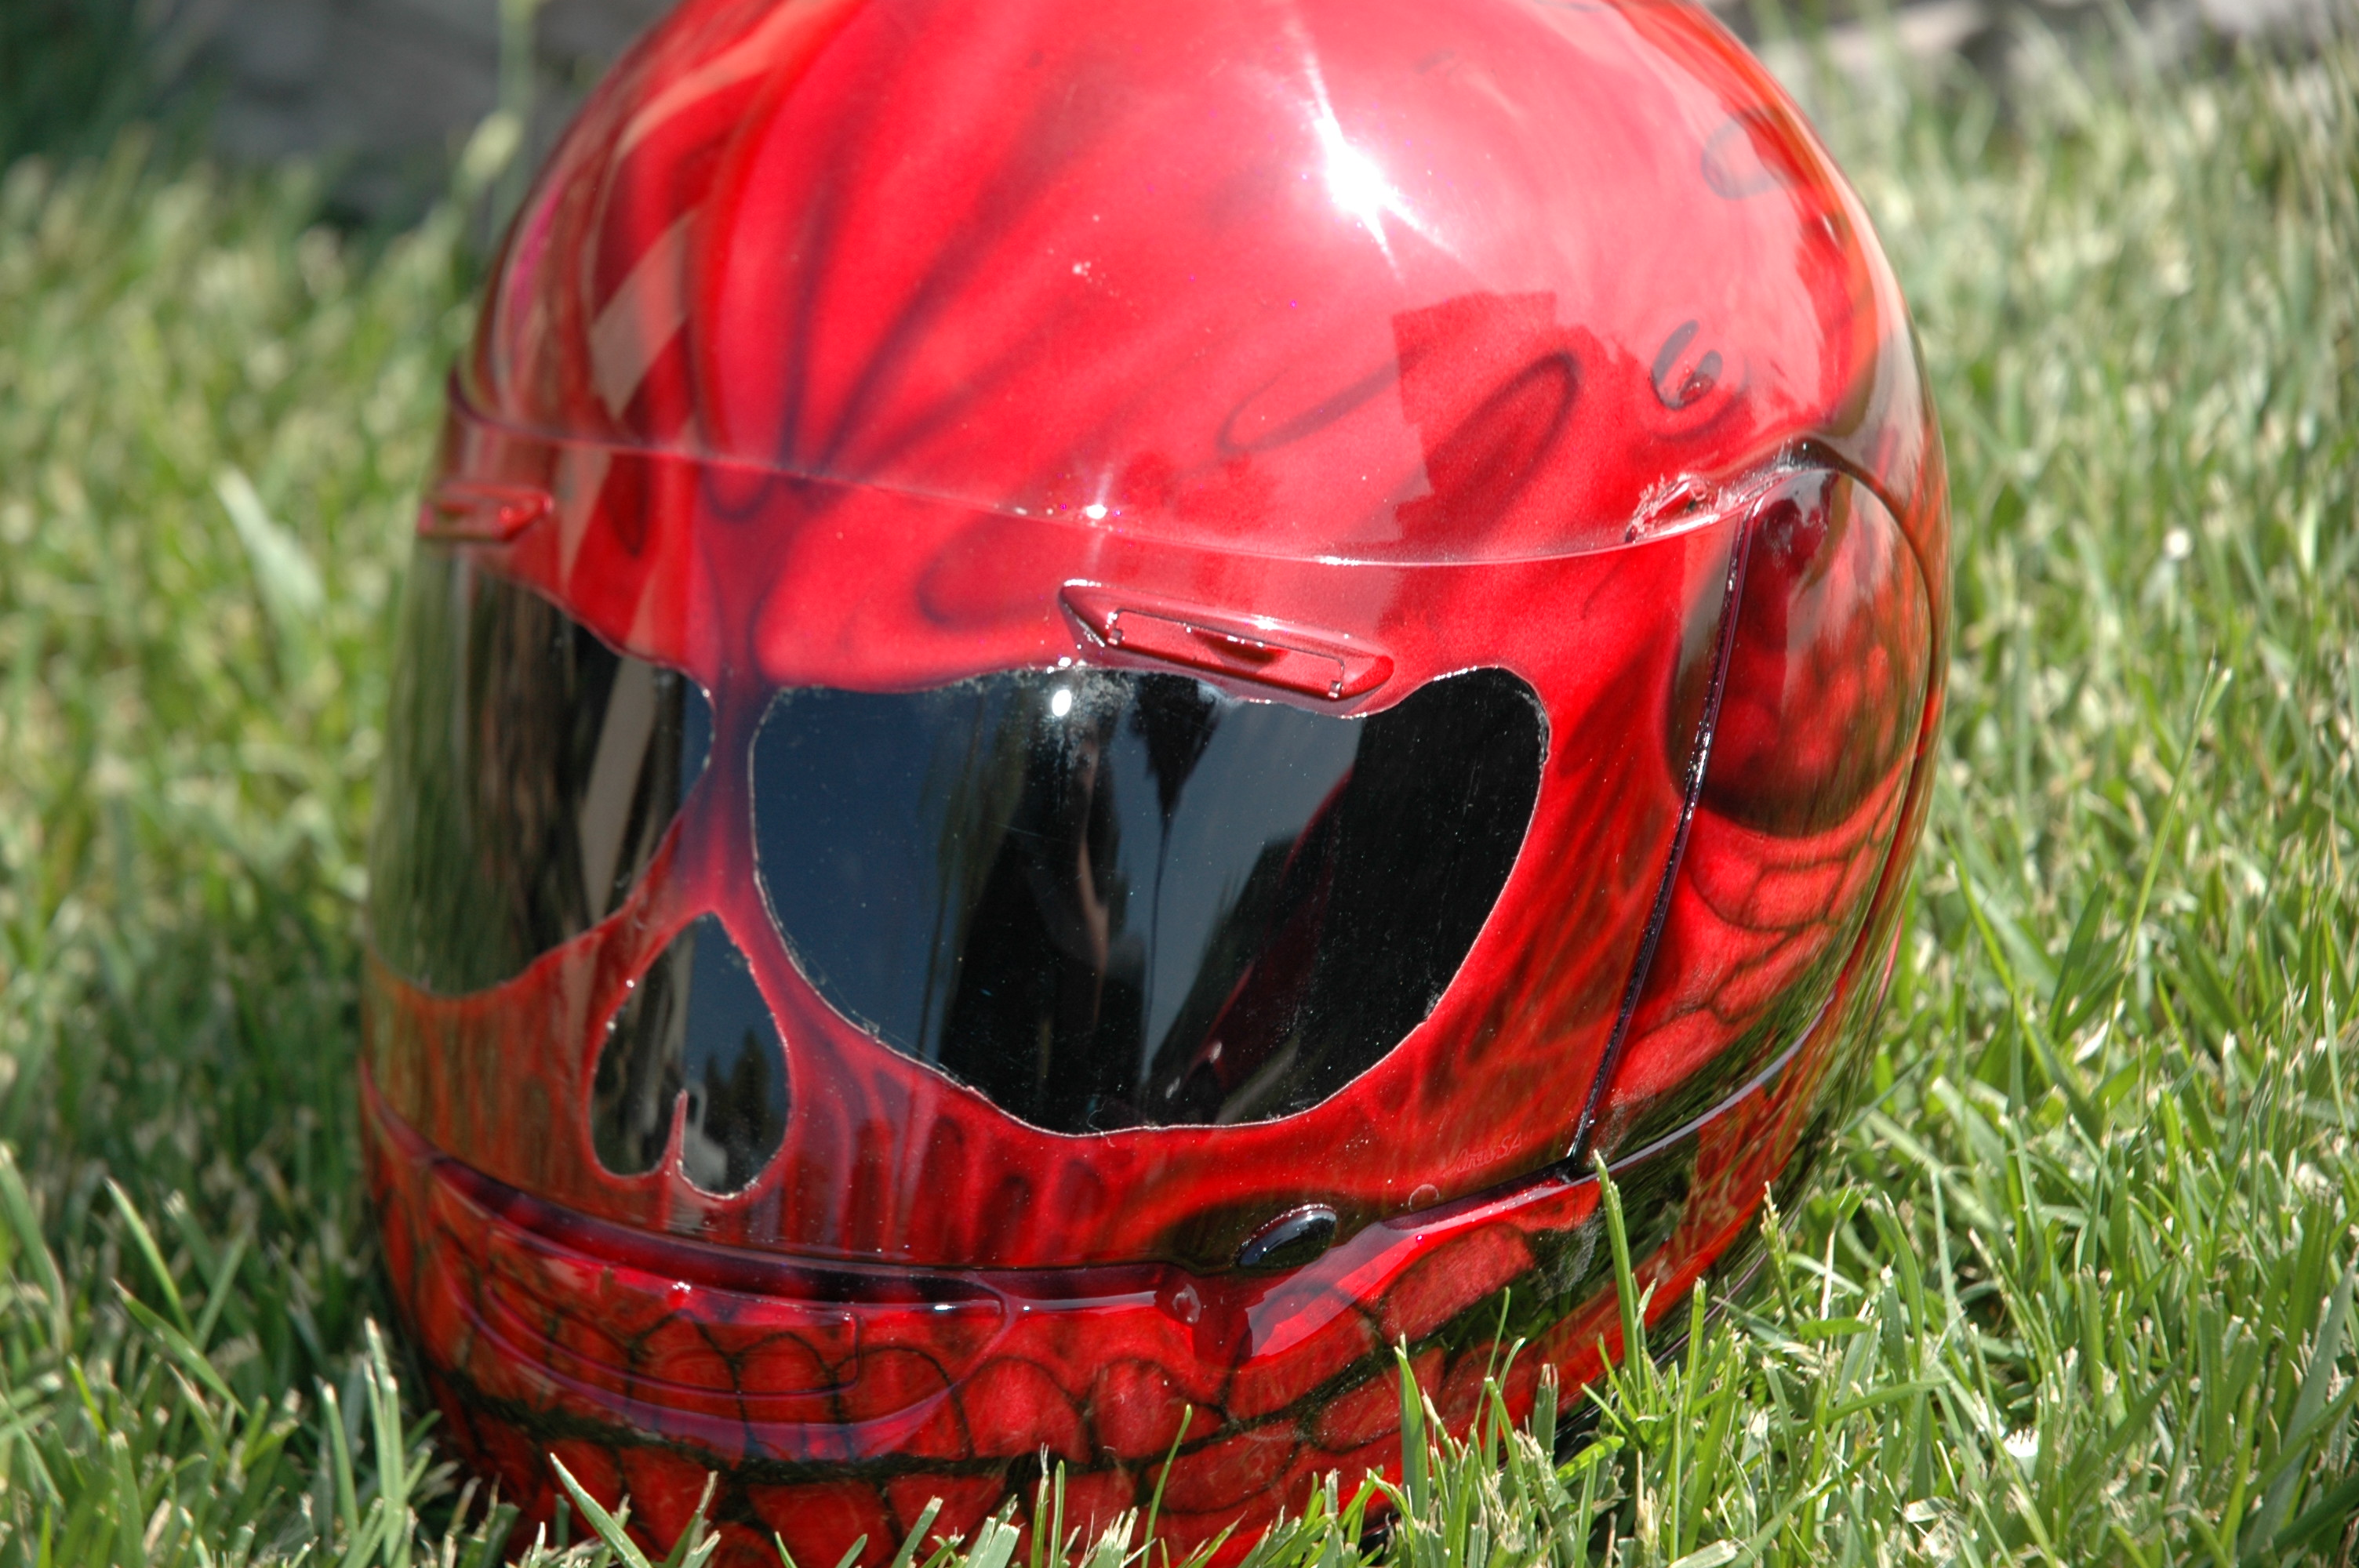 Custom Airbrush Paint Motorcycle Helmets For Sale By Bad Ass Paint